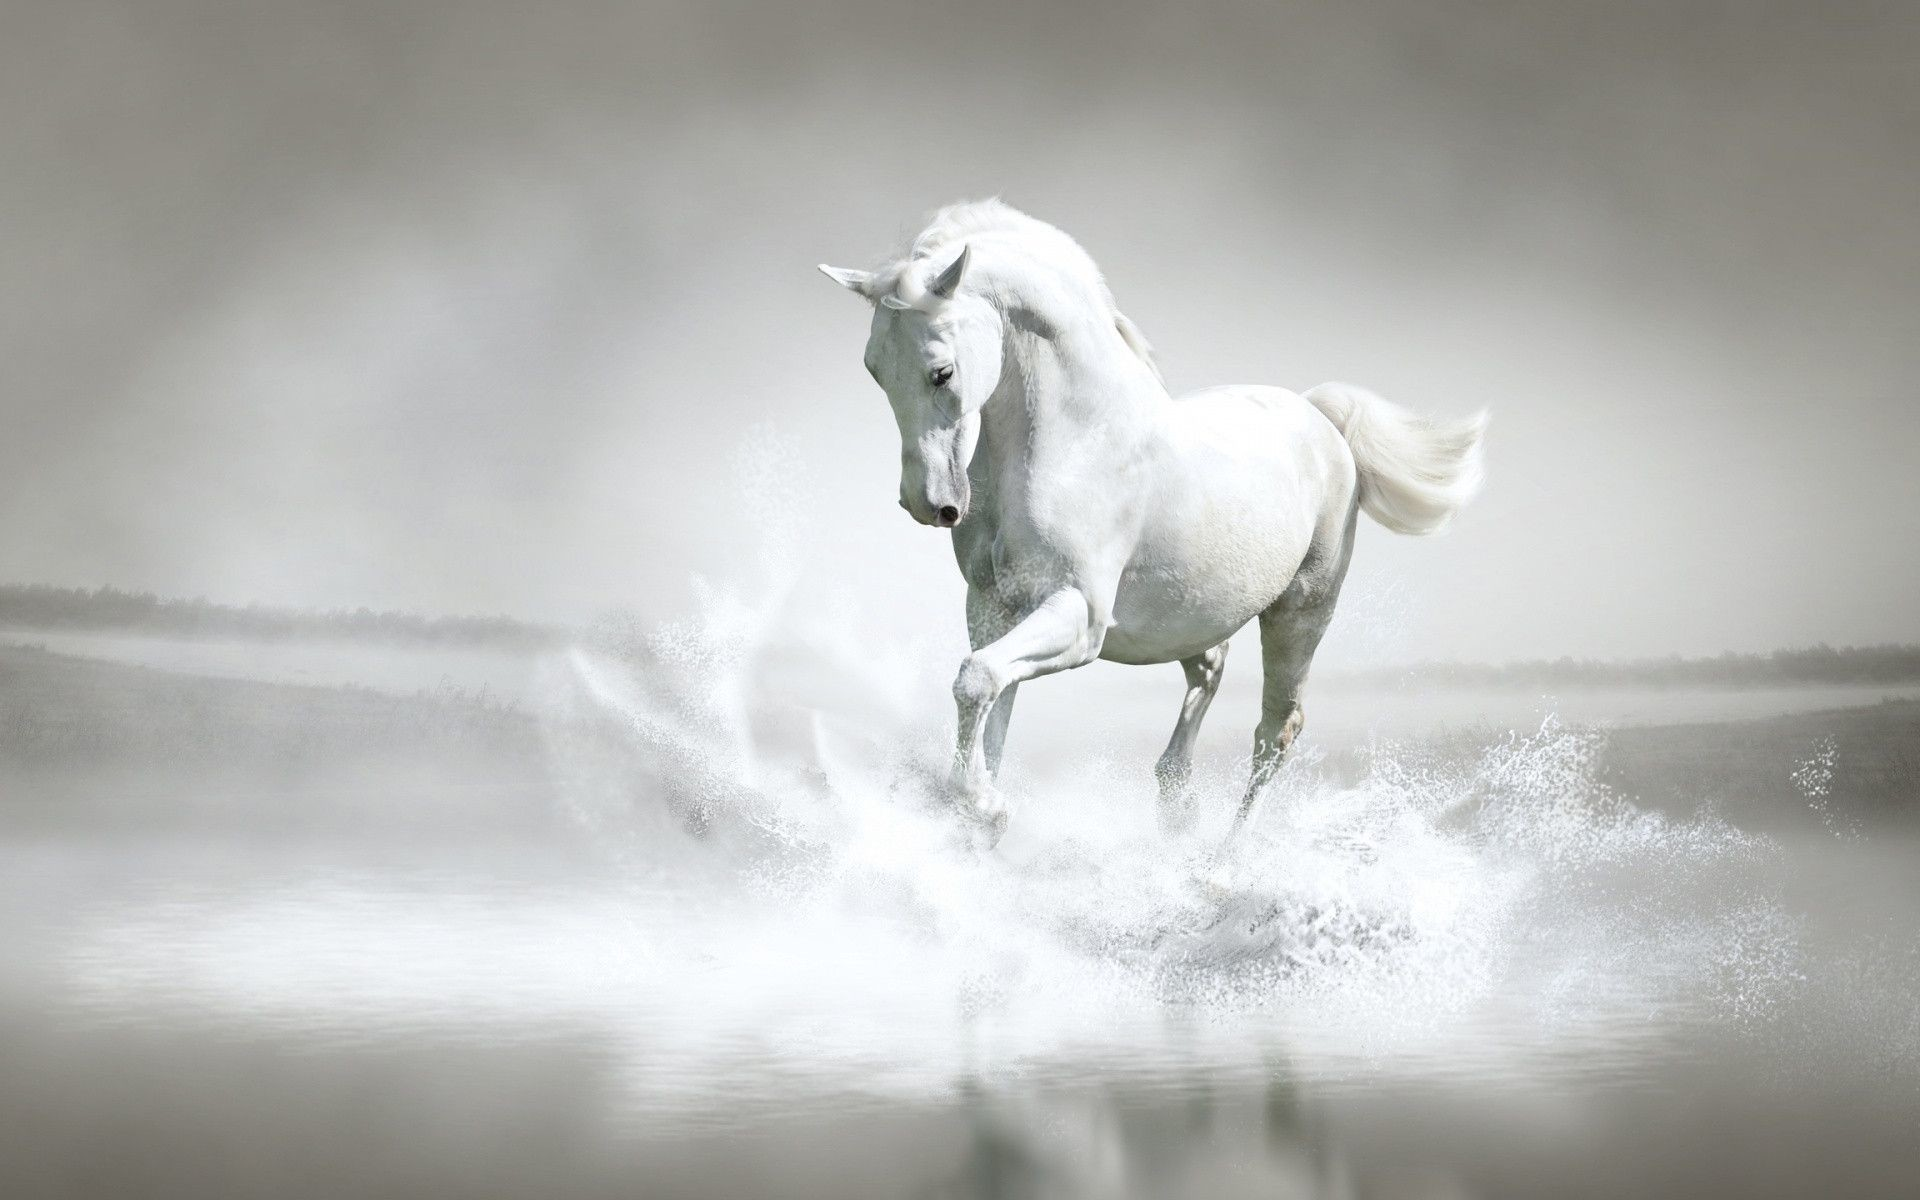 Res: 1920x1200, White Horse Wallpapers With Water